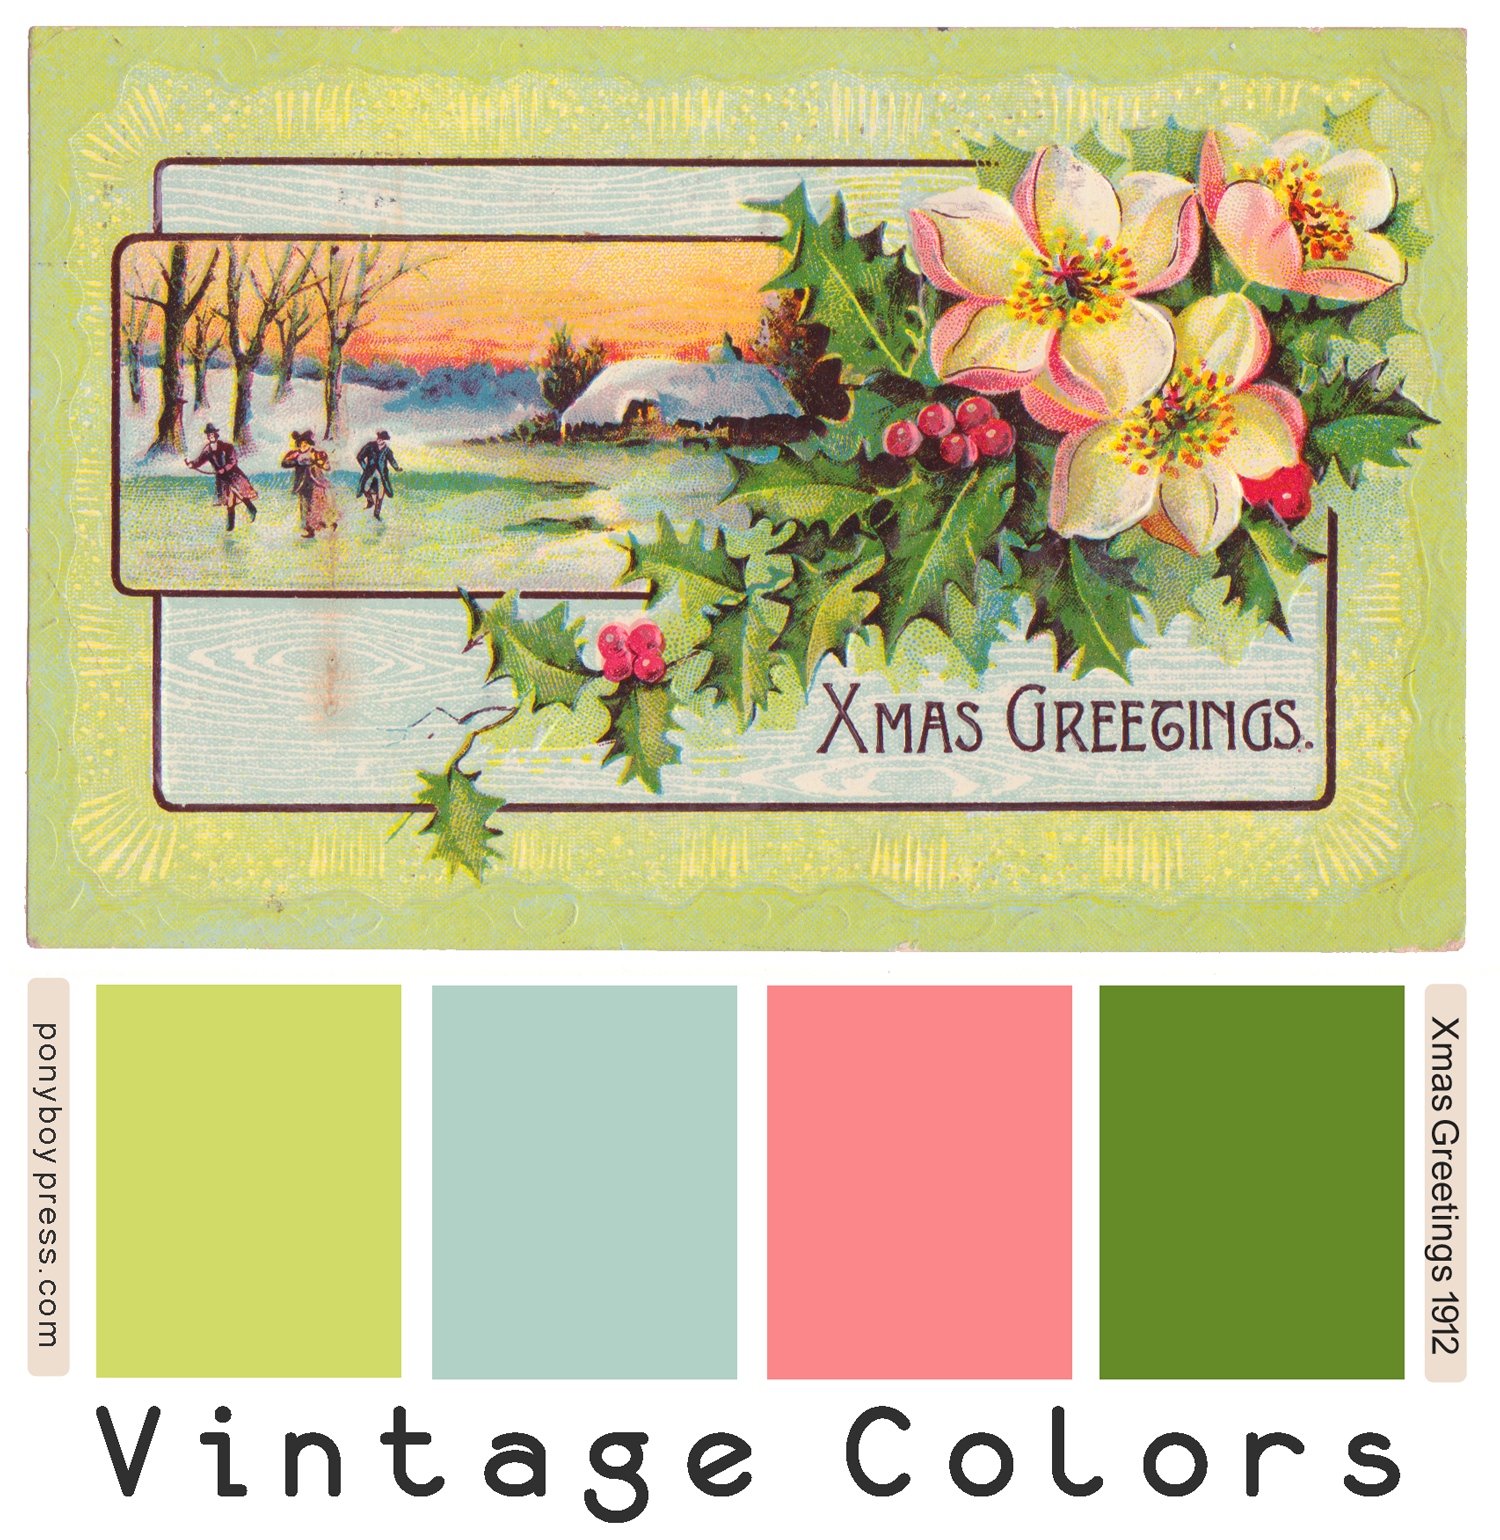 Xmas Greetings Vintage Color Palettes on Ponyboy Press Blog